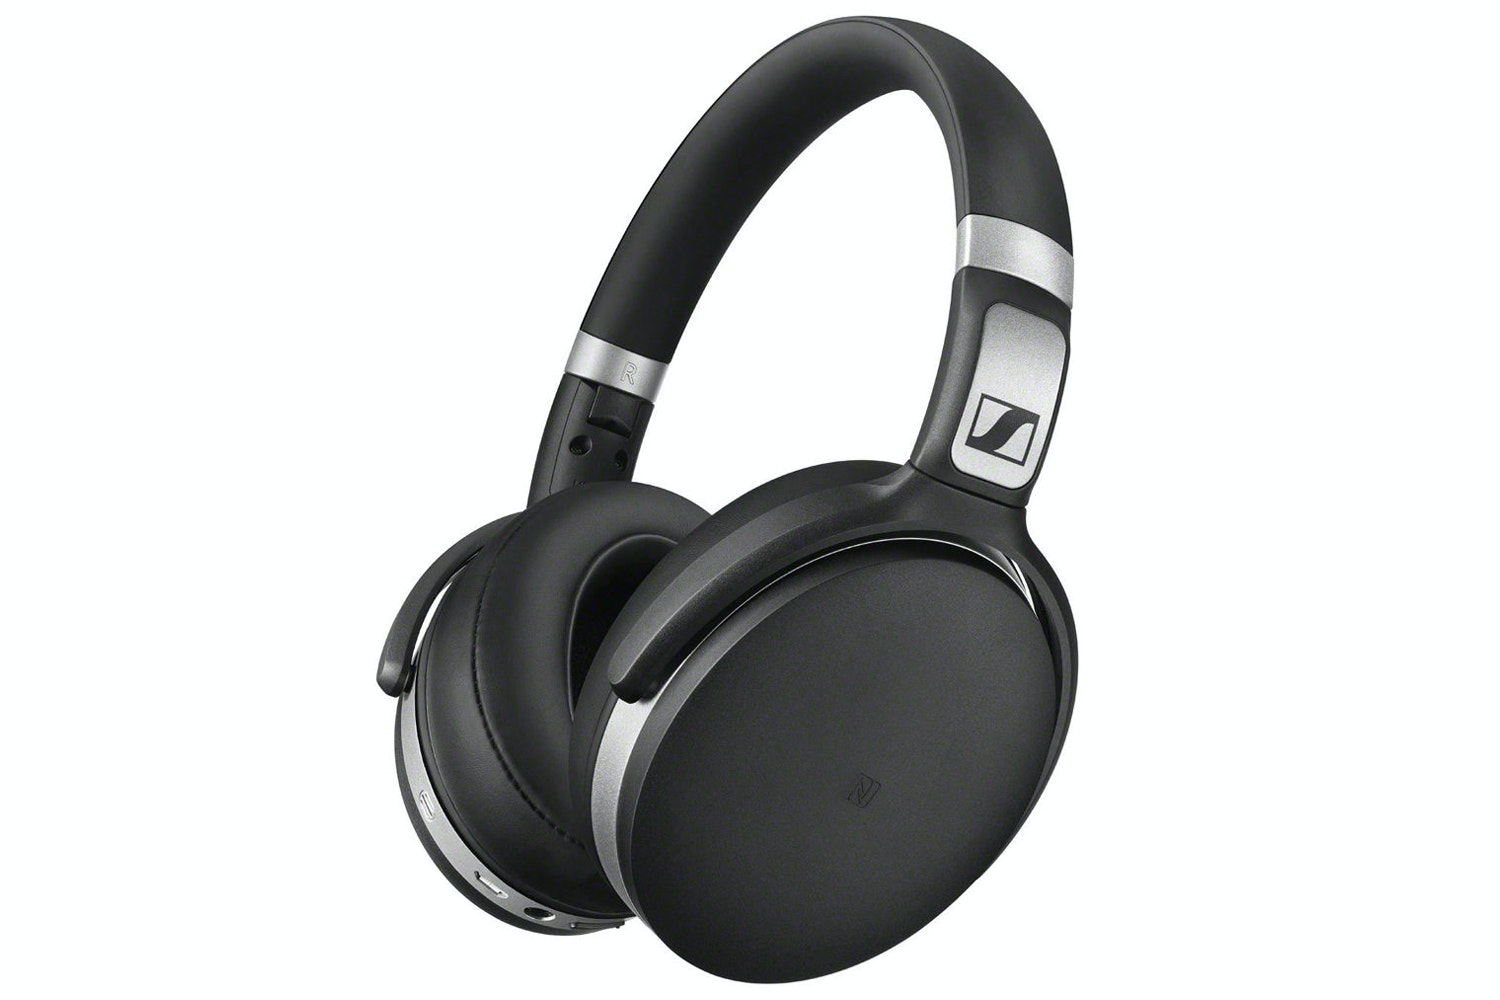 Sennheiser HD 4.50 BTNC Wireless Headphones | Black